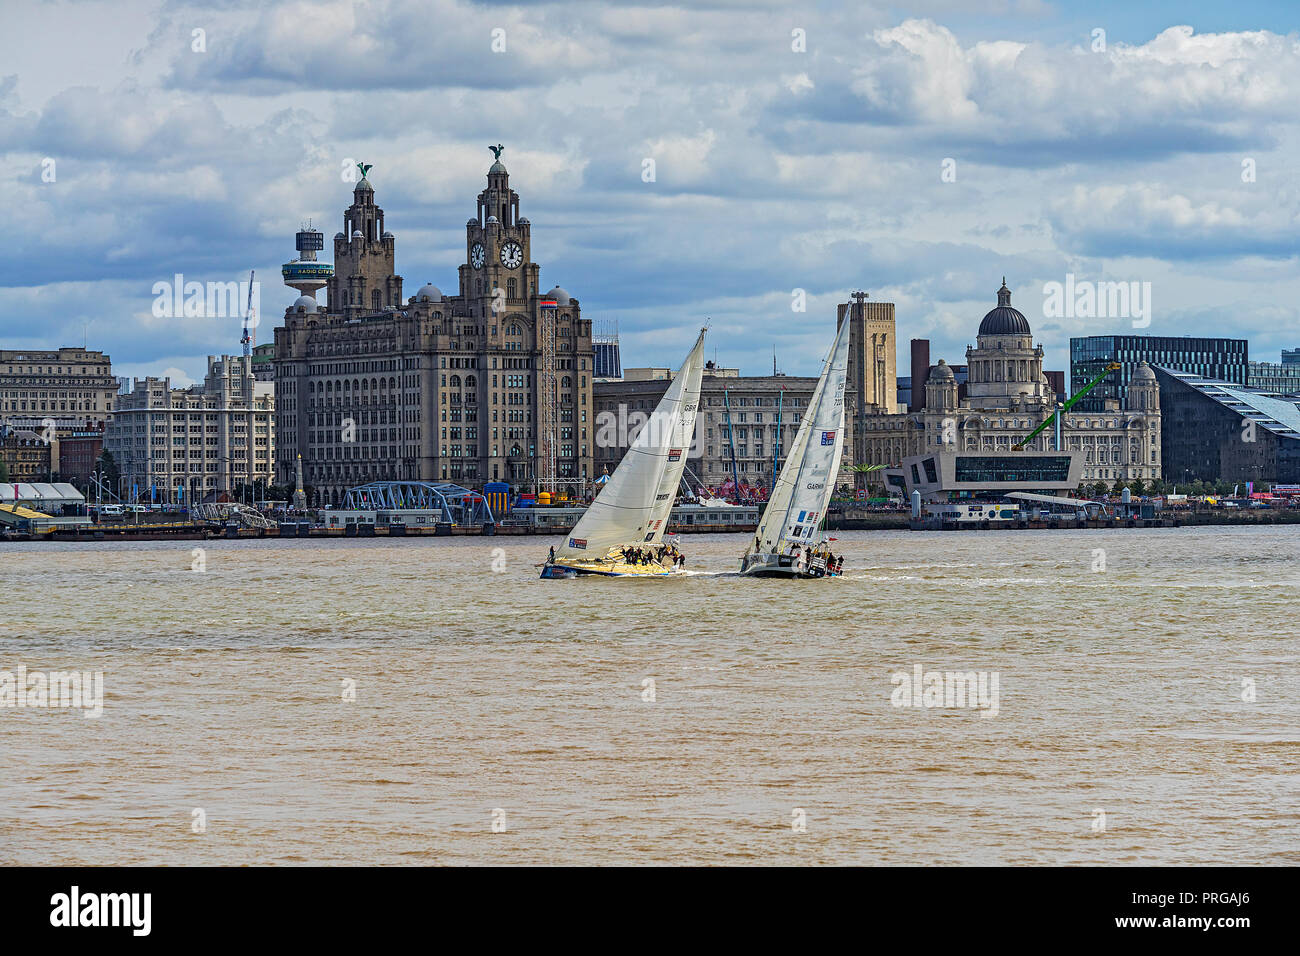 Clipper Round the World Race 2017-18 showing 2 yachts passing the The Three Graces buildings on the Liverpool waterfront on Sunday 20th August 2017 - Stock Image